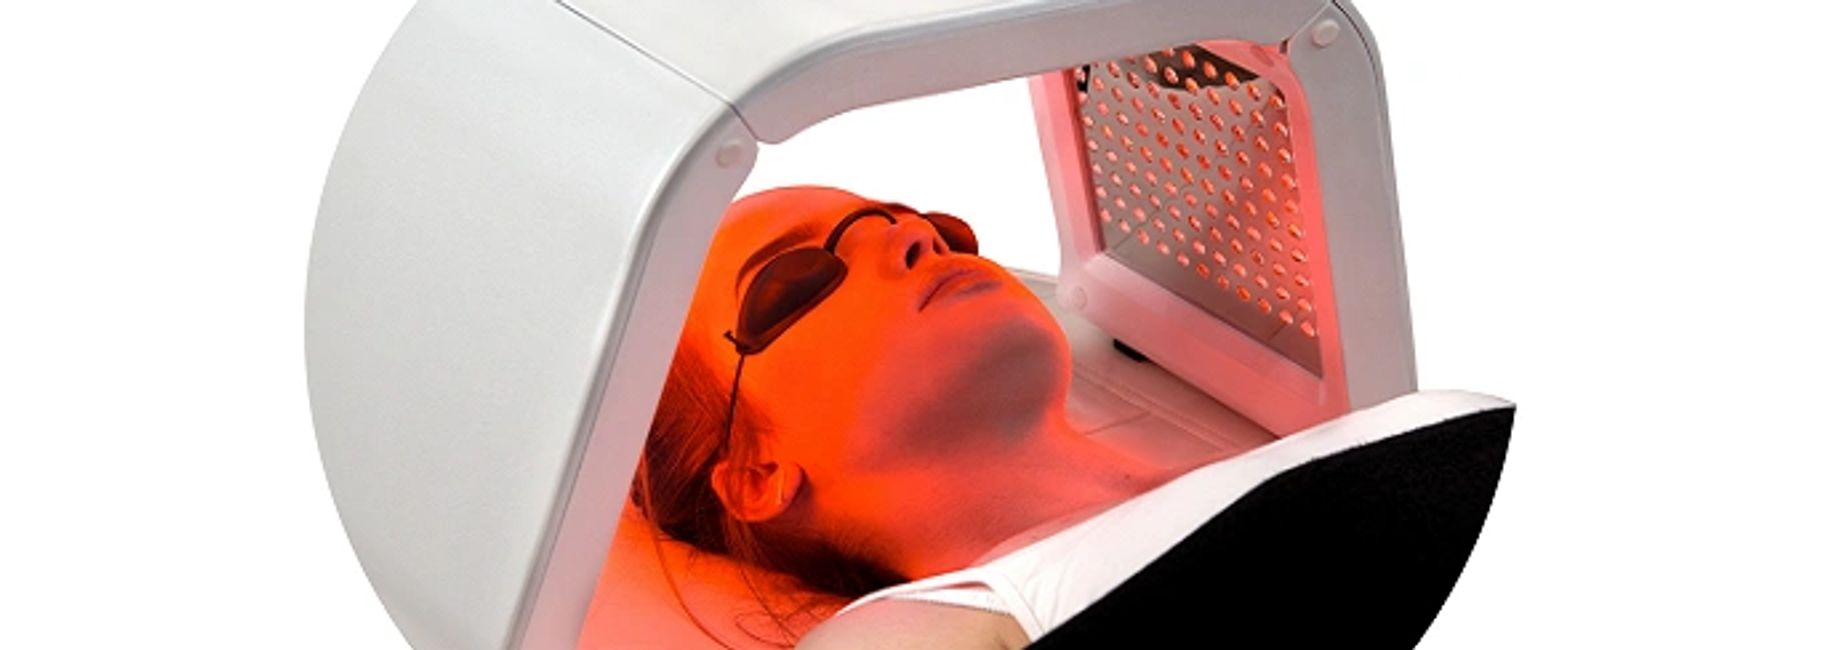 quad glow light therapy for face and body reduces fine lines, wrinkles, age spots, acne, lymph drain